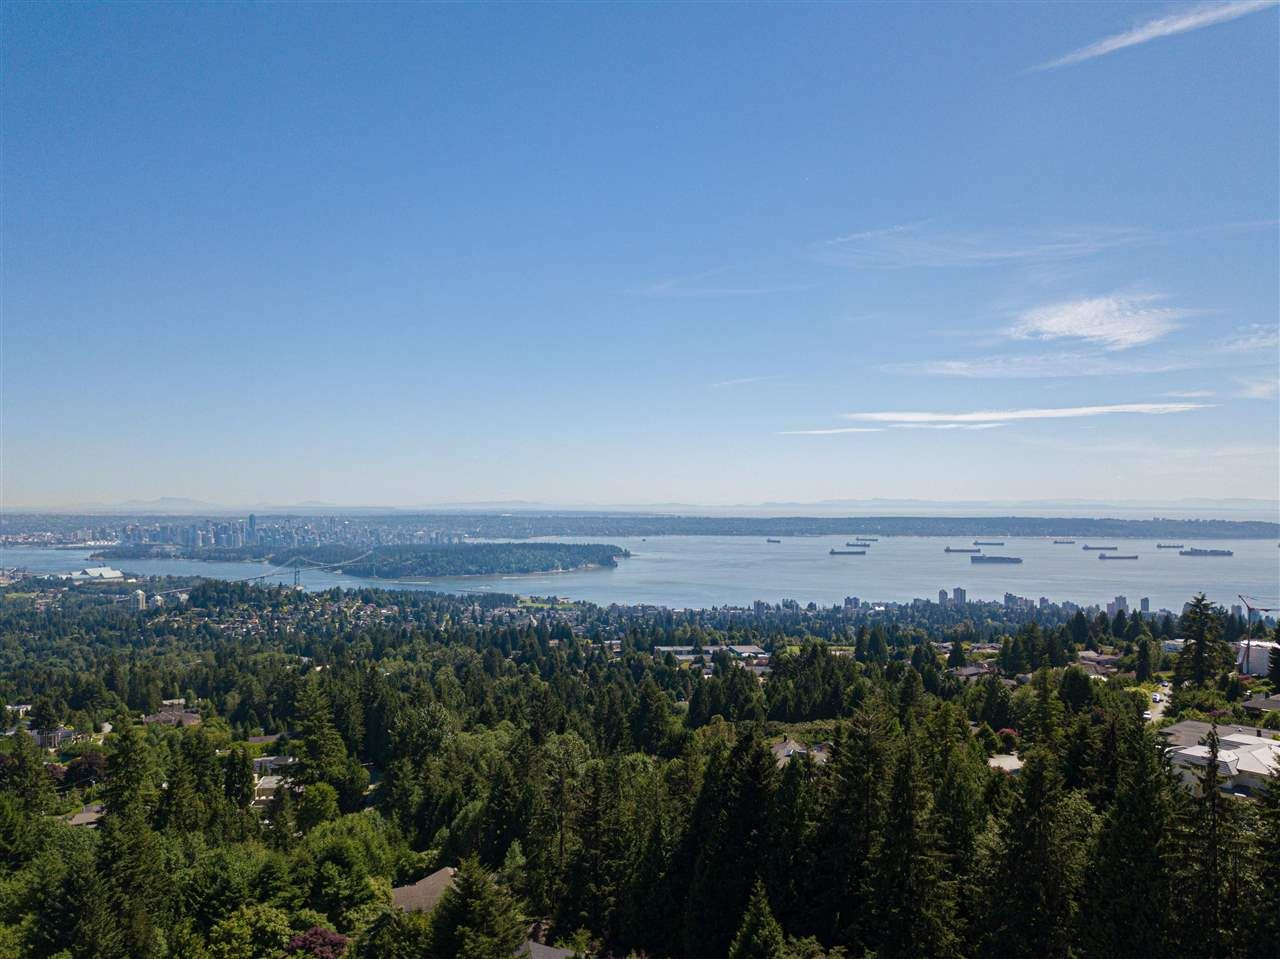 Photo for 1144 EYREMOUNT DRIVE, West Vancouver, BC V7S 2C5 (MLS # R2590347)